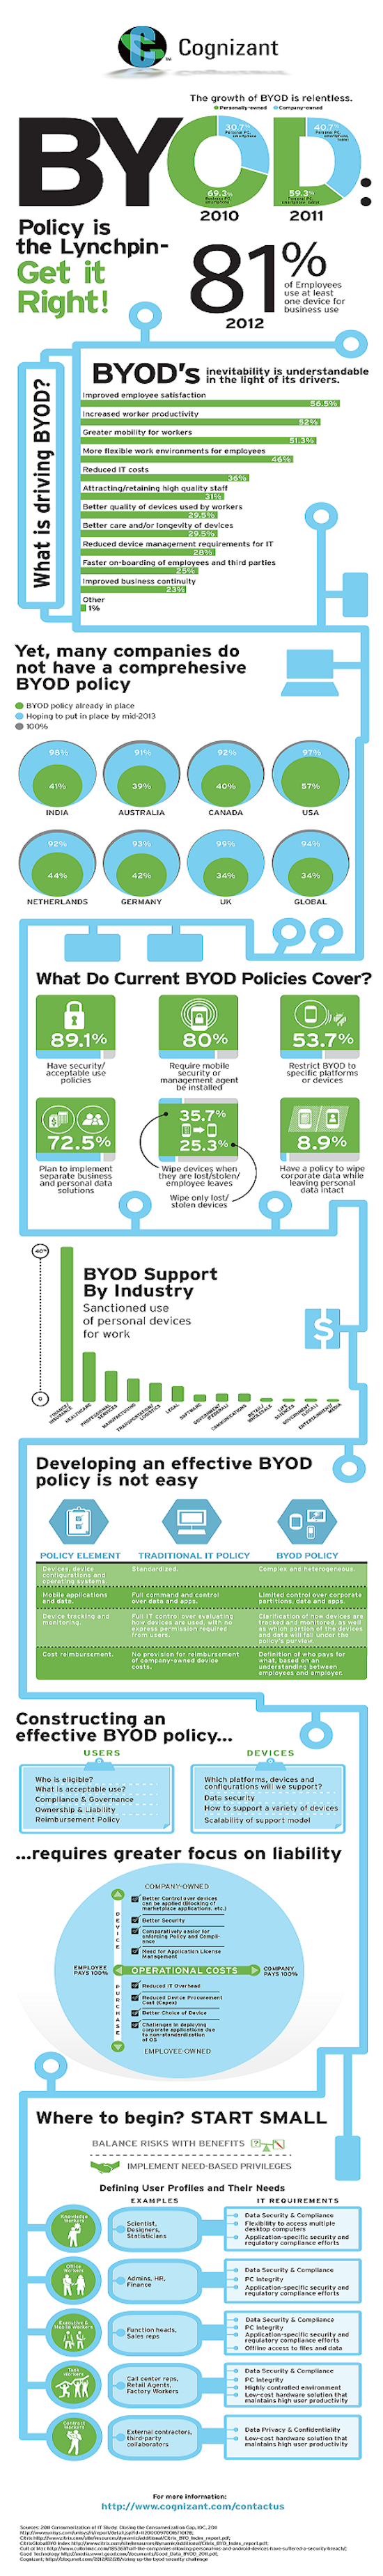 byod-infographic_big